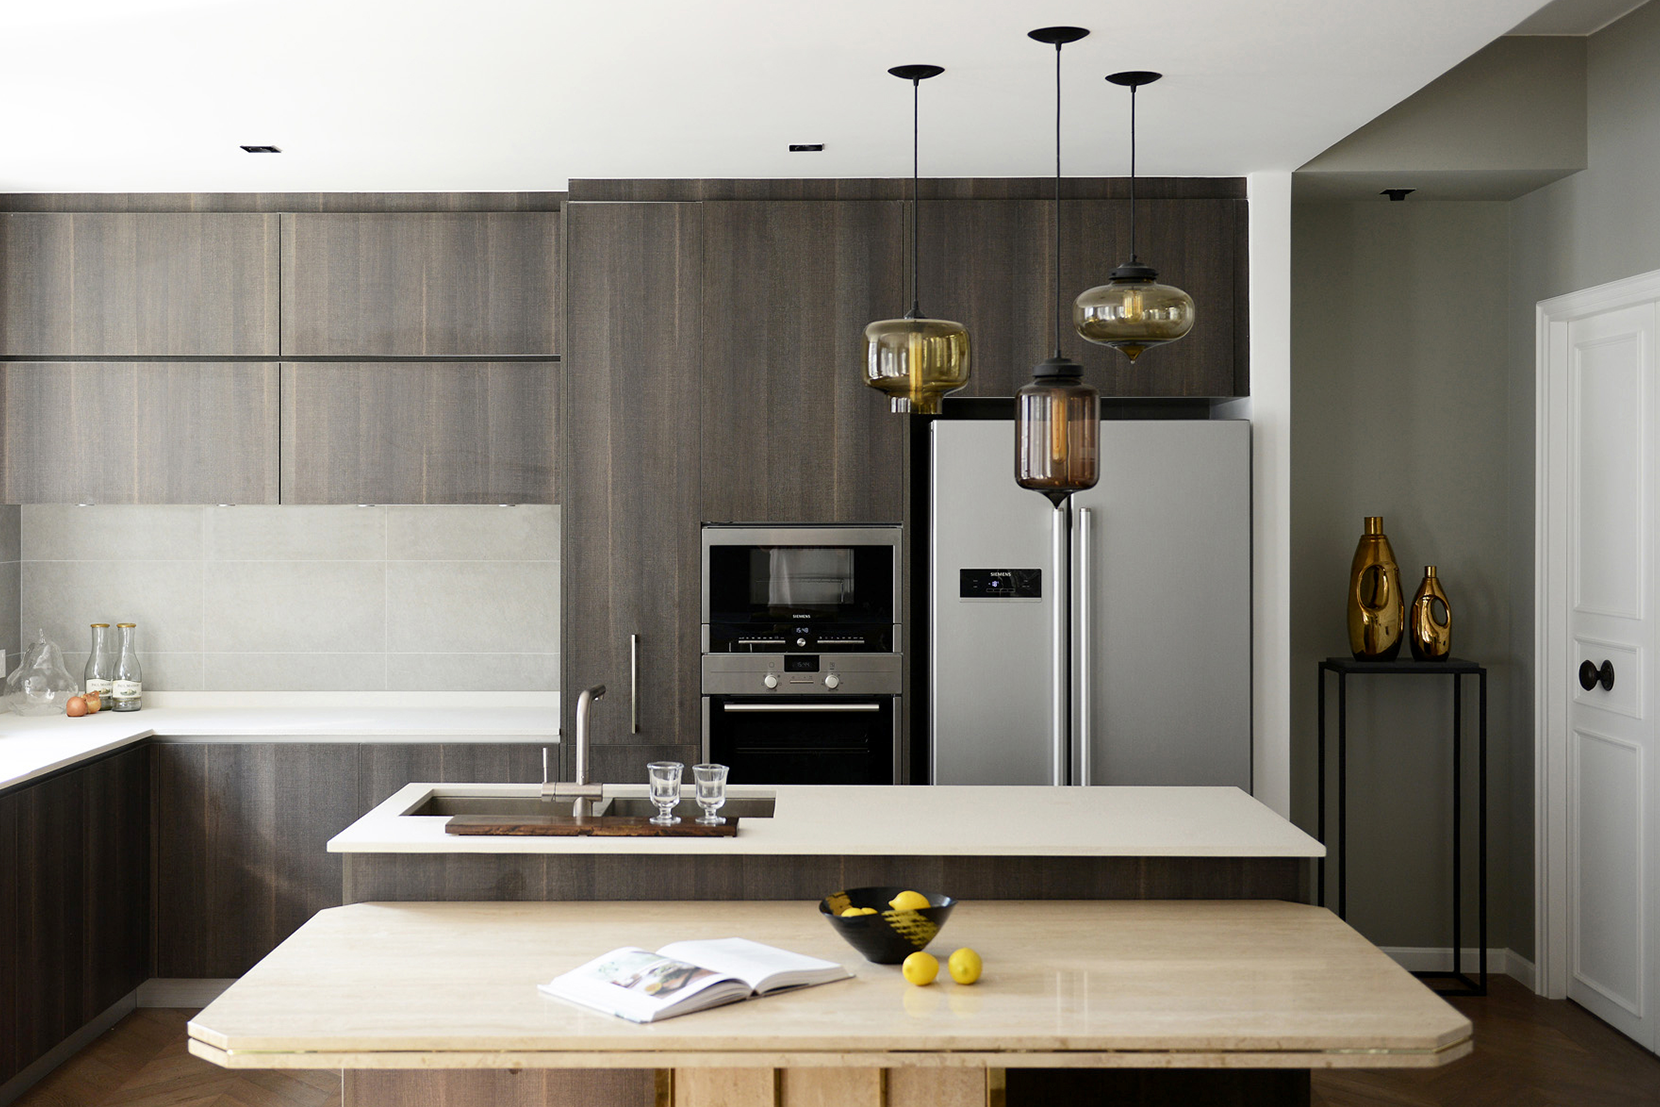 Lighting-Project-Pages_0007s_0007_Kitchen-Modern-Multi-Pendant-Lighting-Display.png